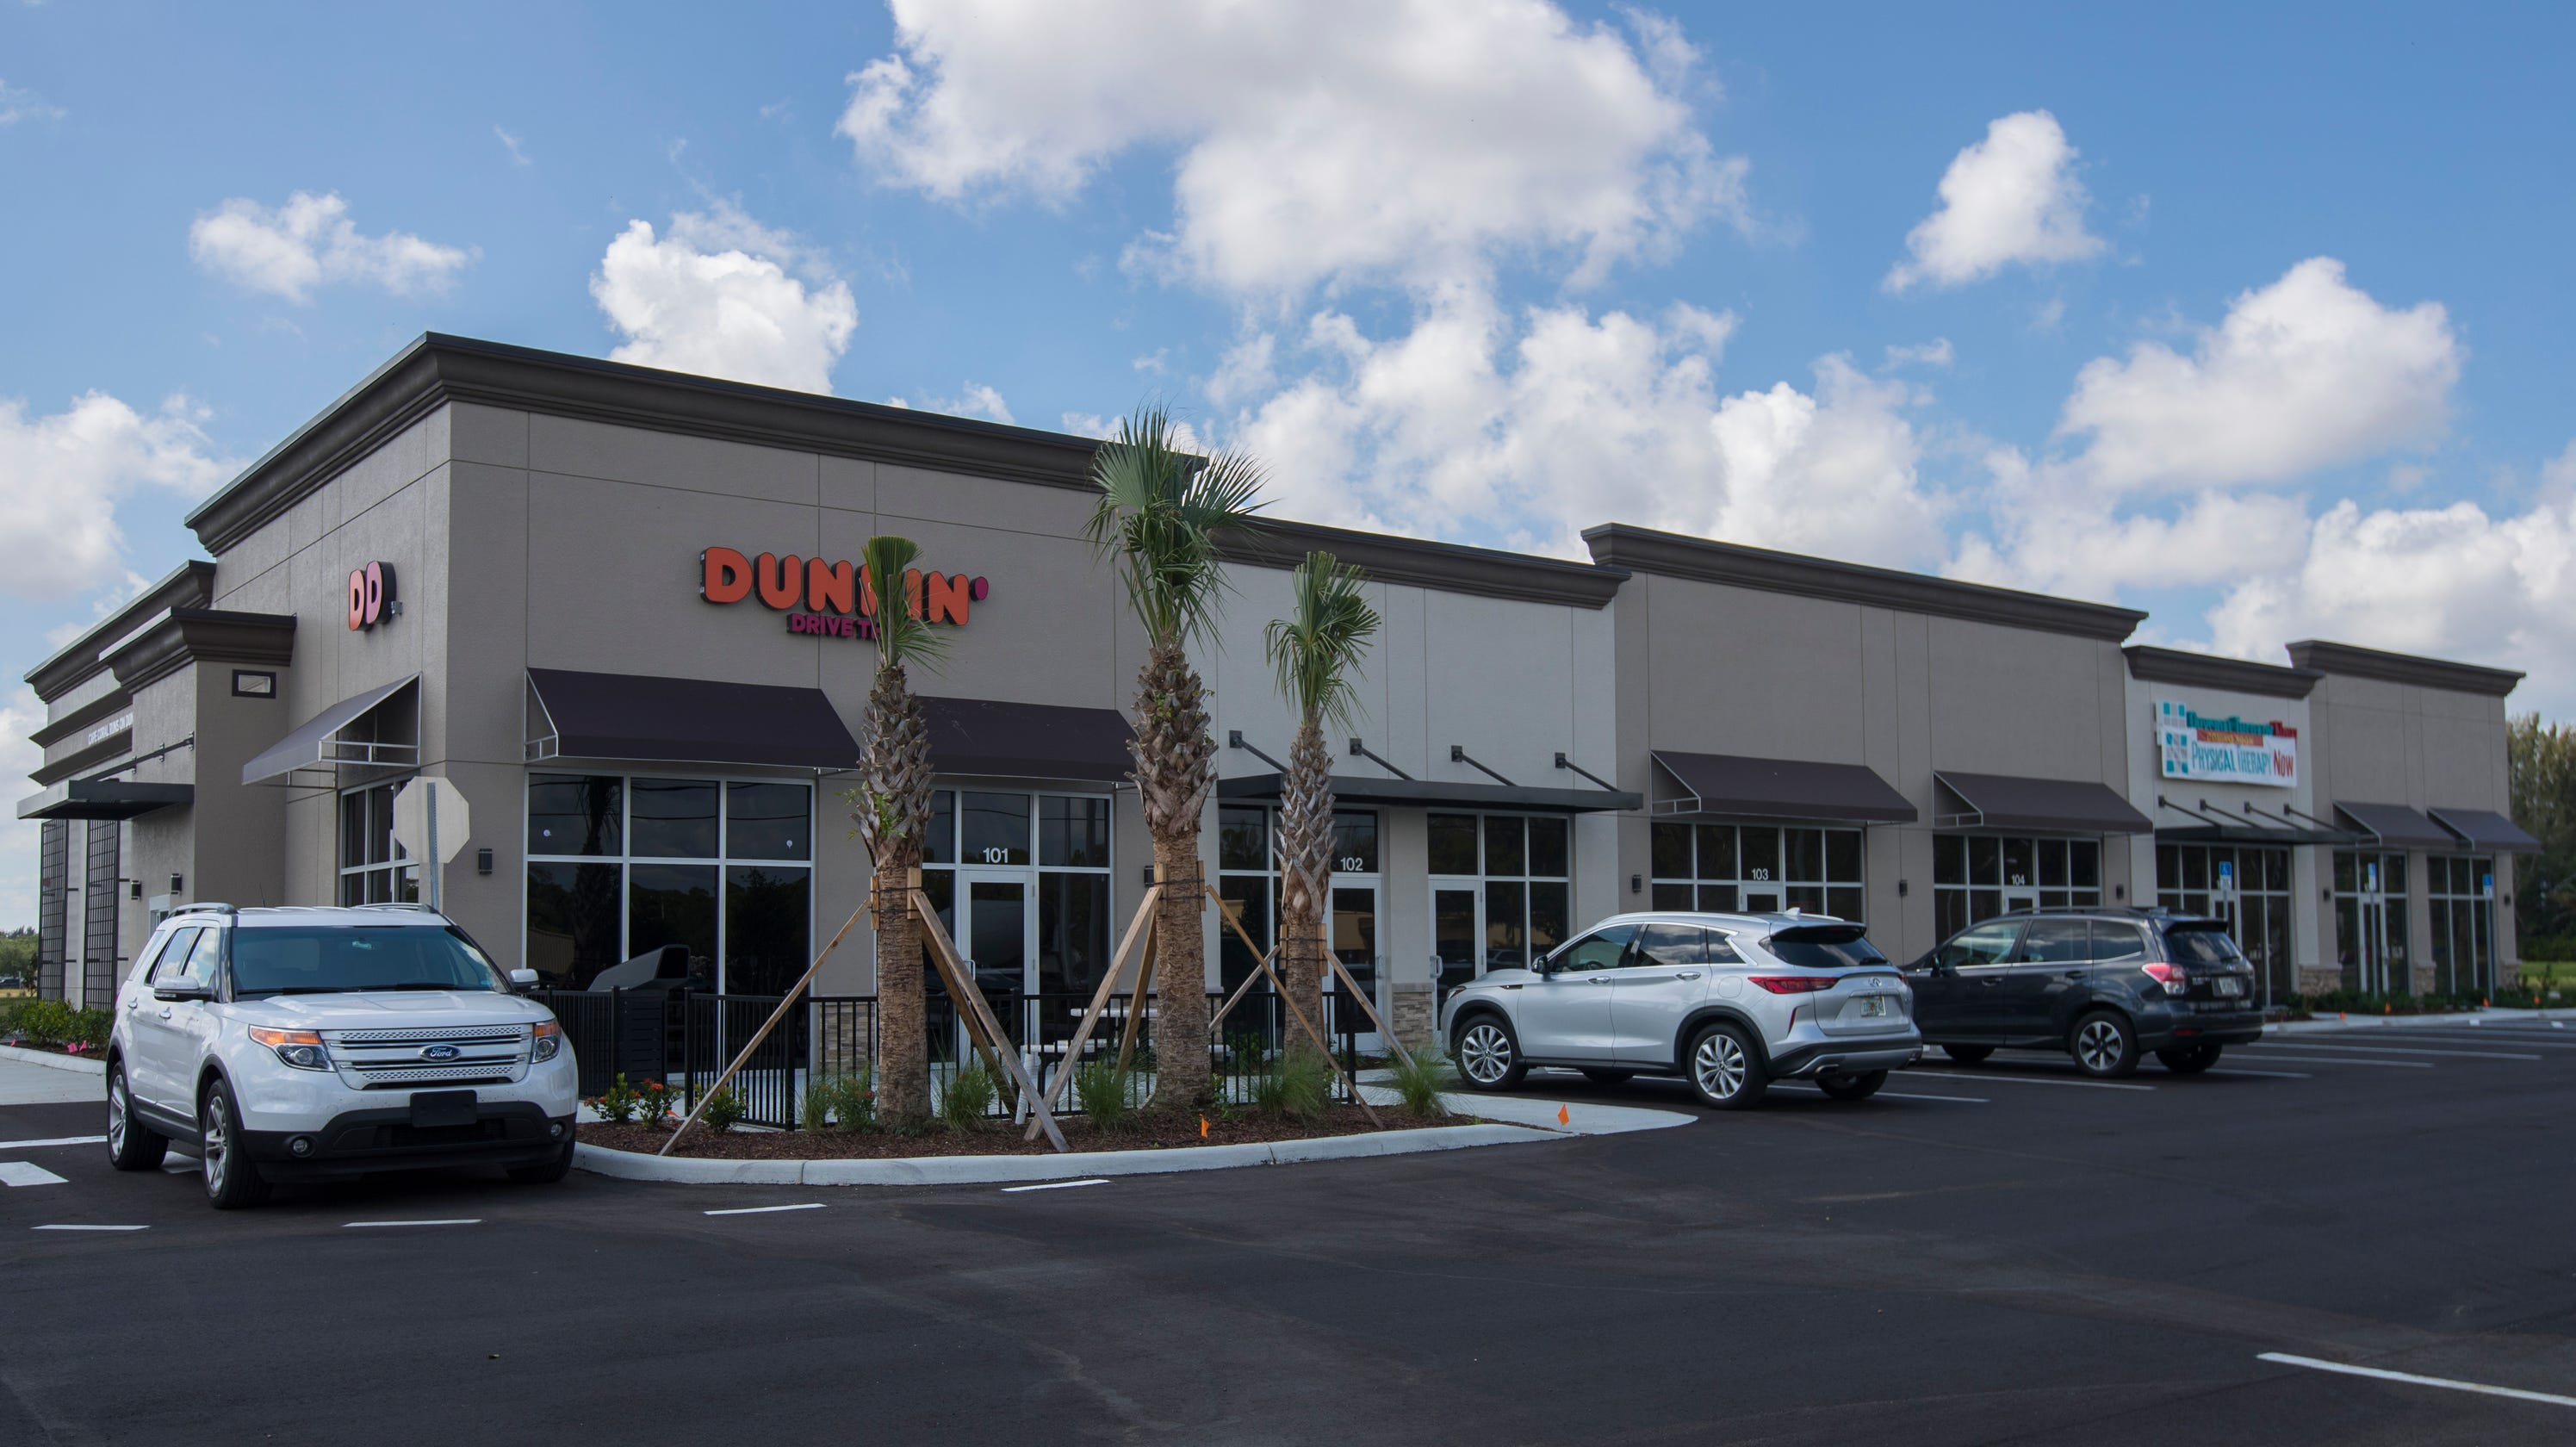 Dunkin' dropping 'donuts' from name, surges in Cape Coral